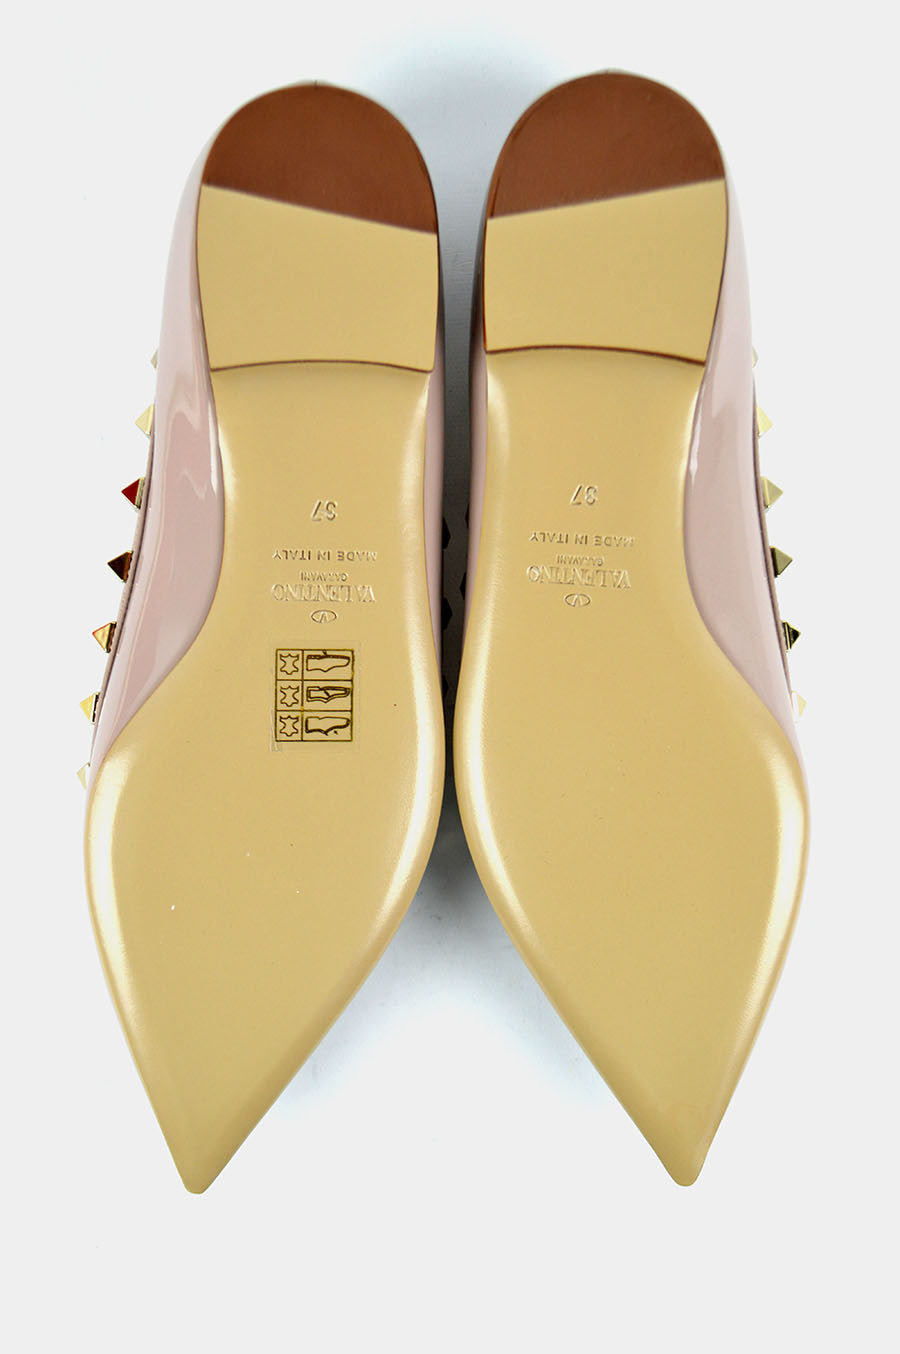 Nude Patent Leather Rockstuds